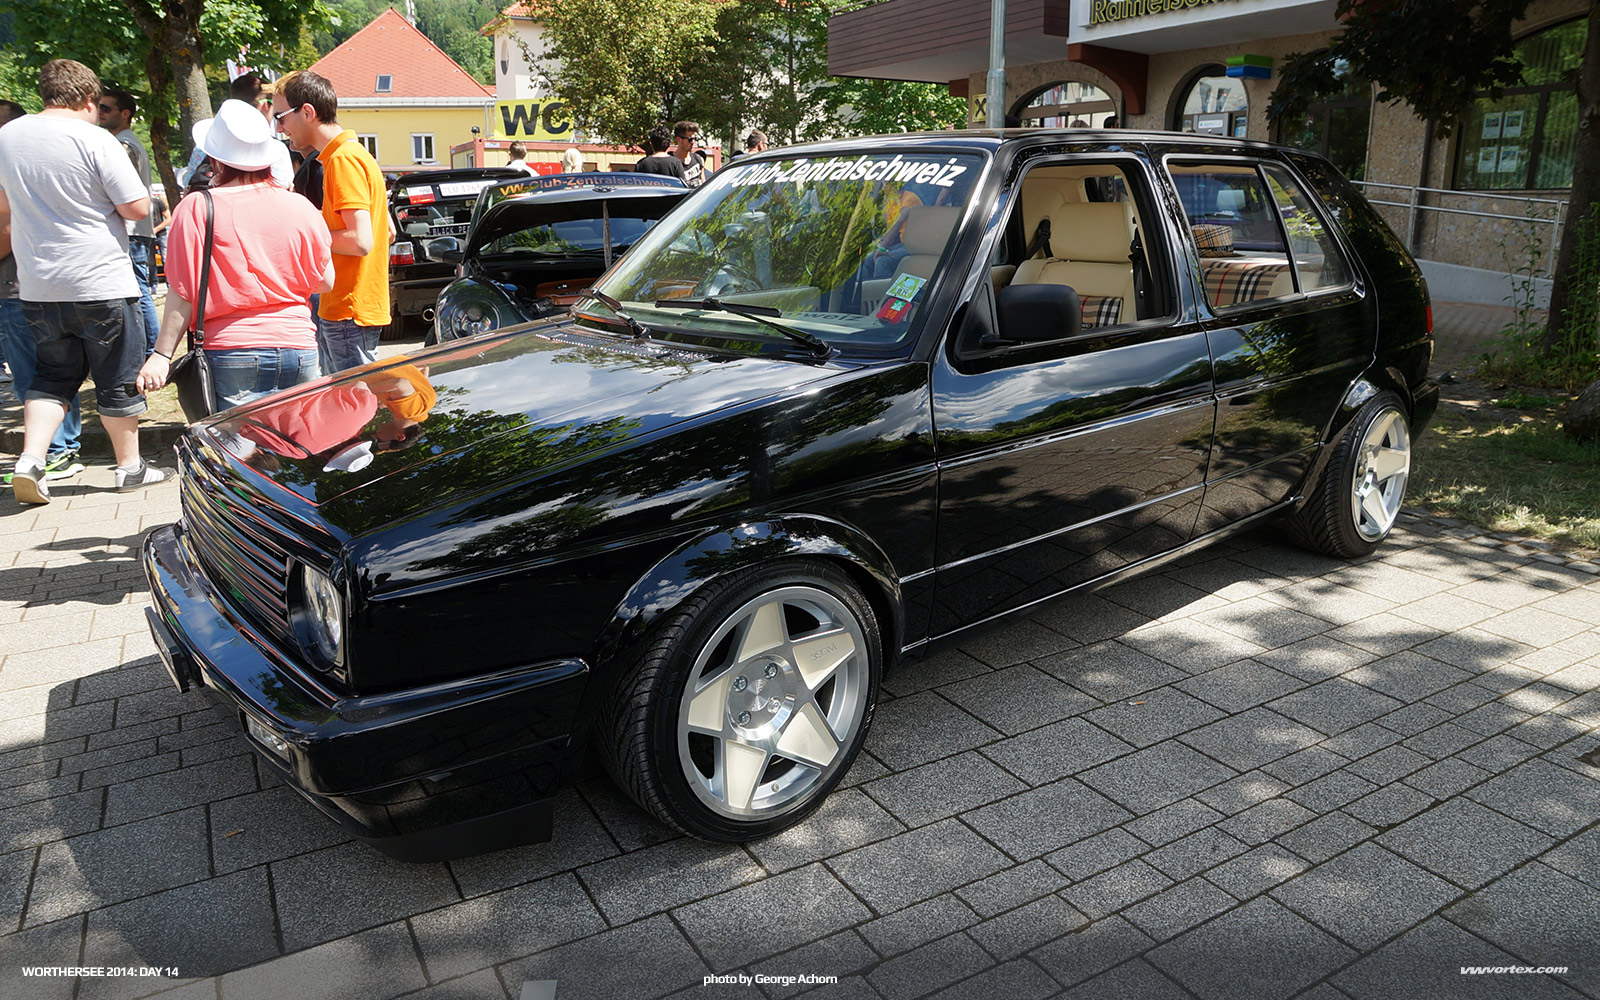 2014 Worthersee Day 14 VWvortex 1138 600x375